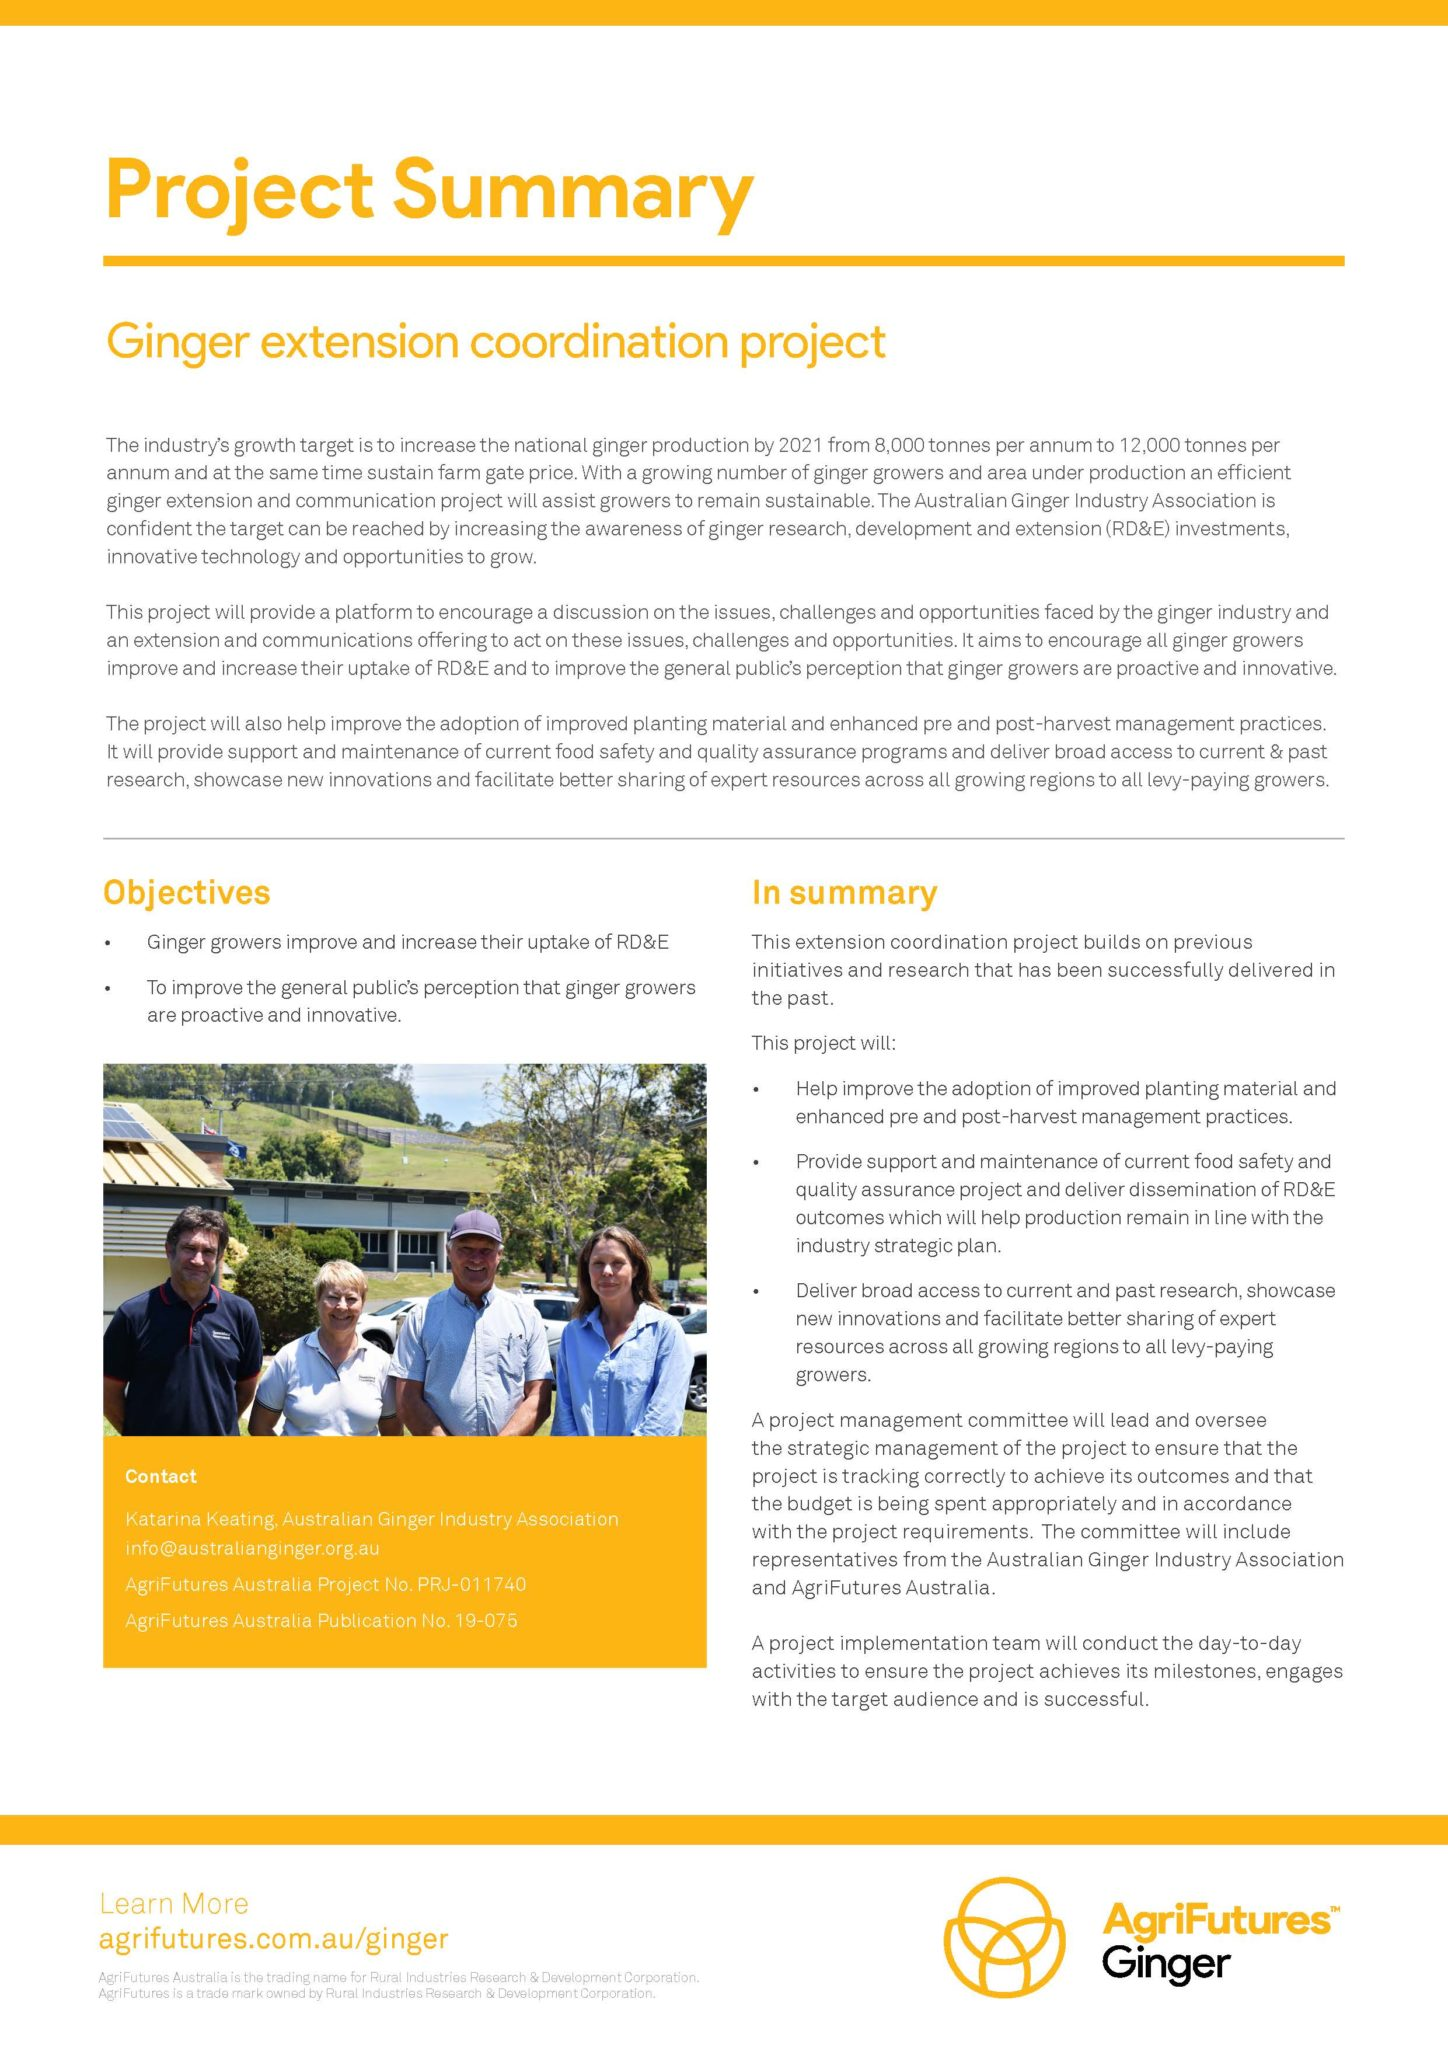 Project summary: Ginger extension coordination project - image